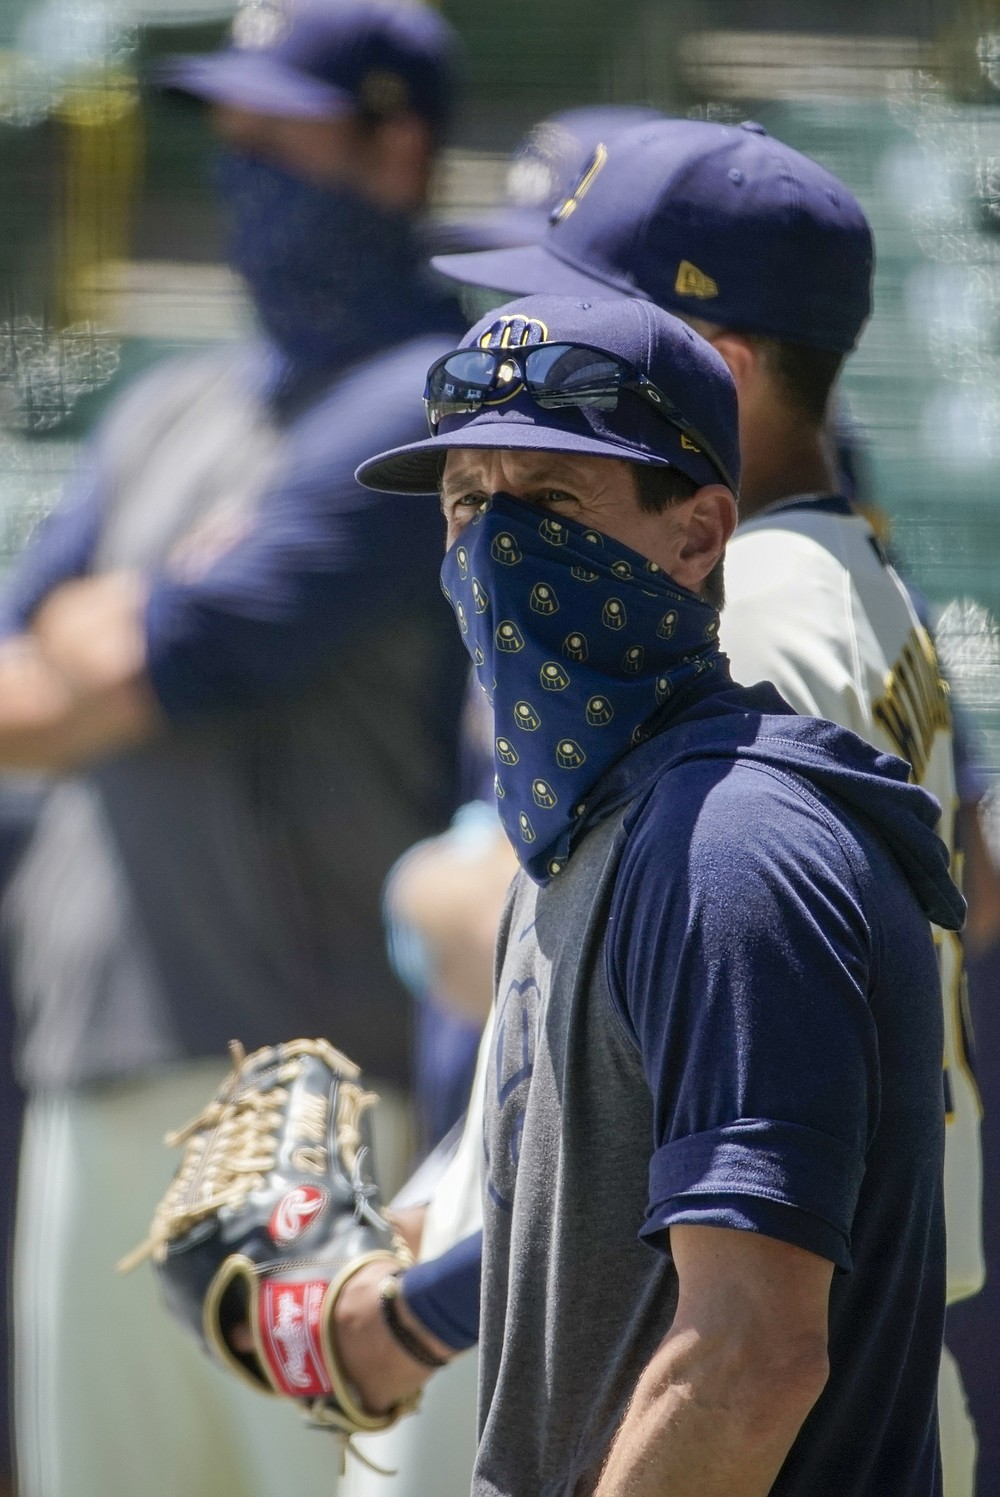 Milwaukee Brewers manager Craig Counsell watches batters during a practice session Monday, July 13, 2020, at Miller Park in Milwaukee. (AP Photo/Morry Gash)